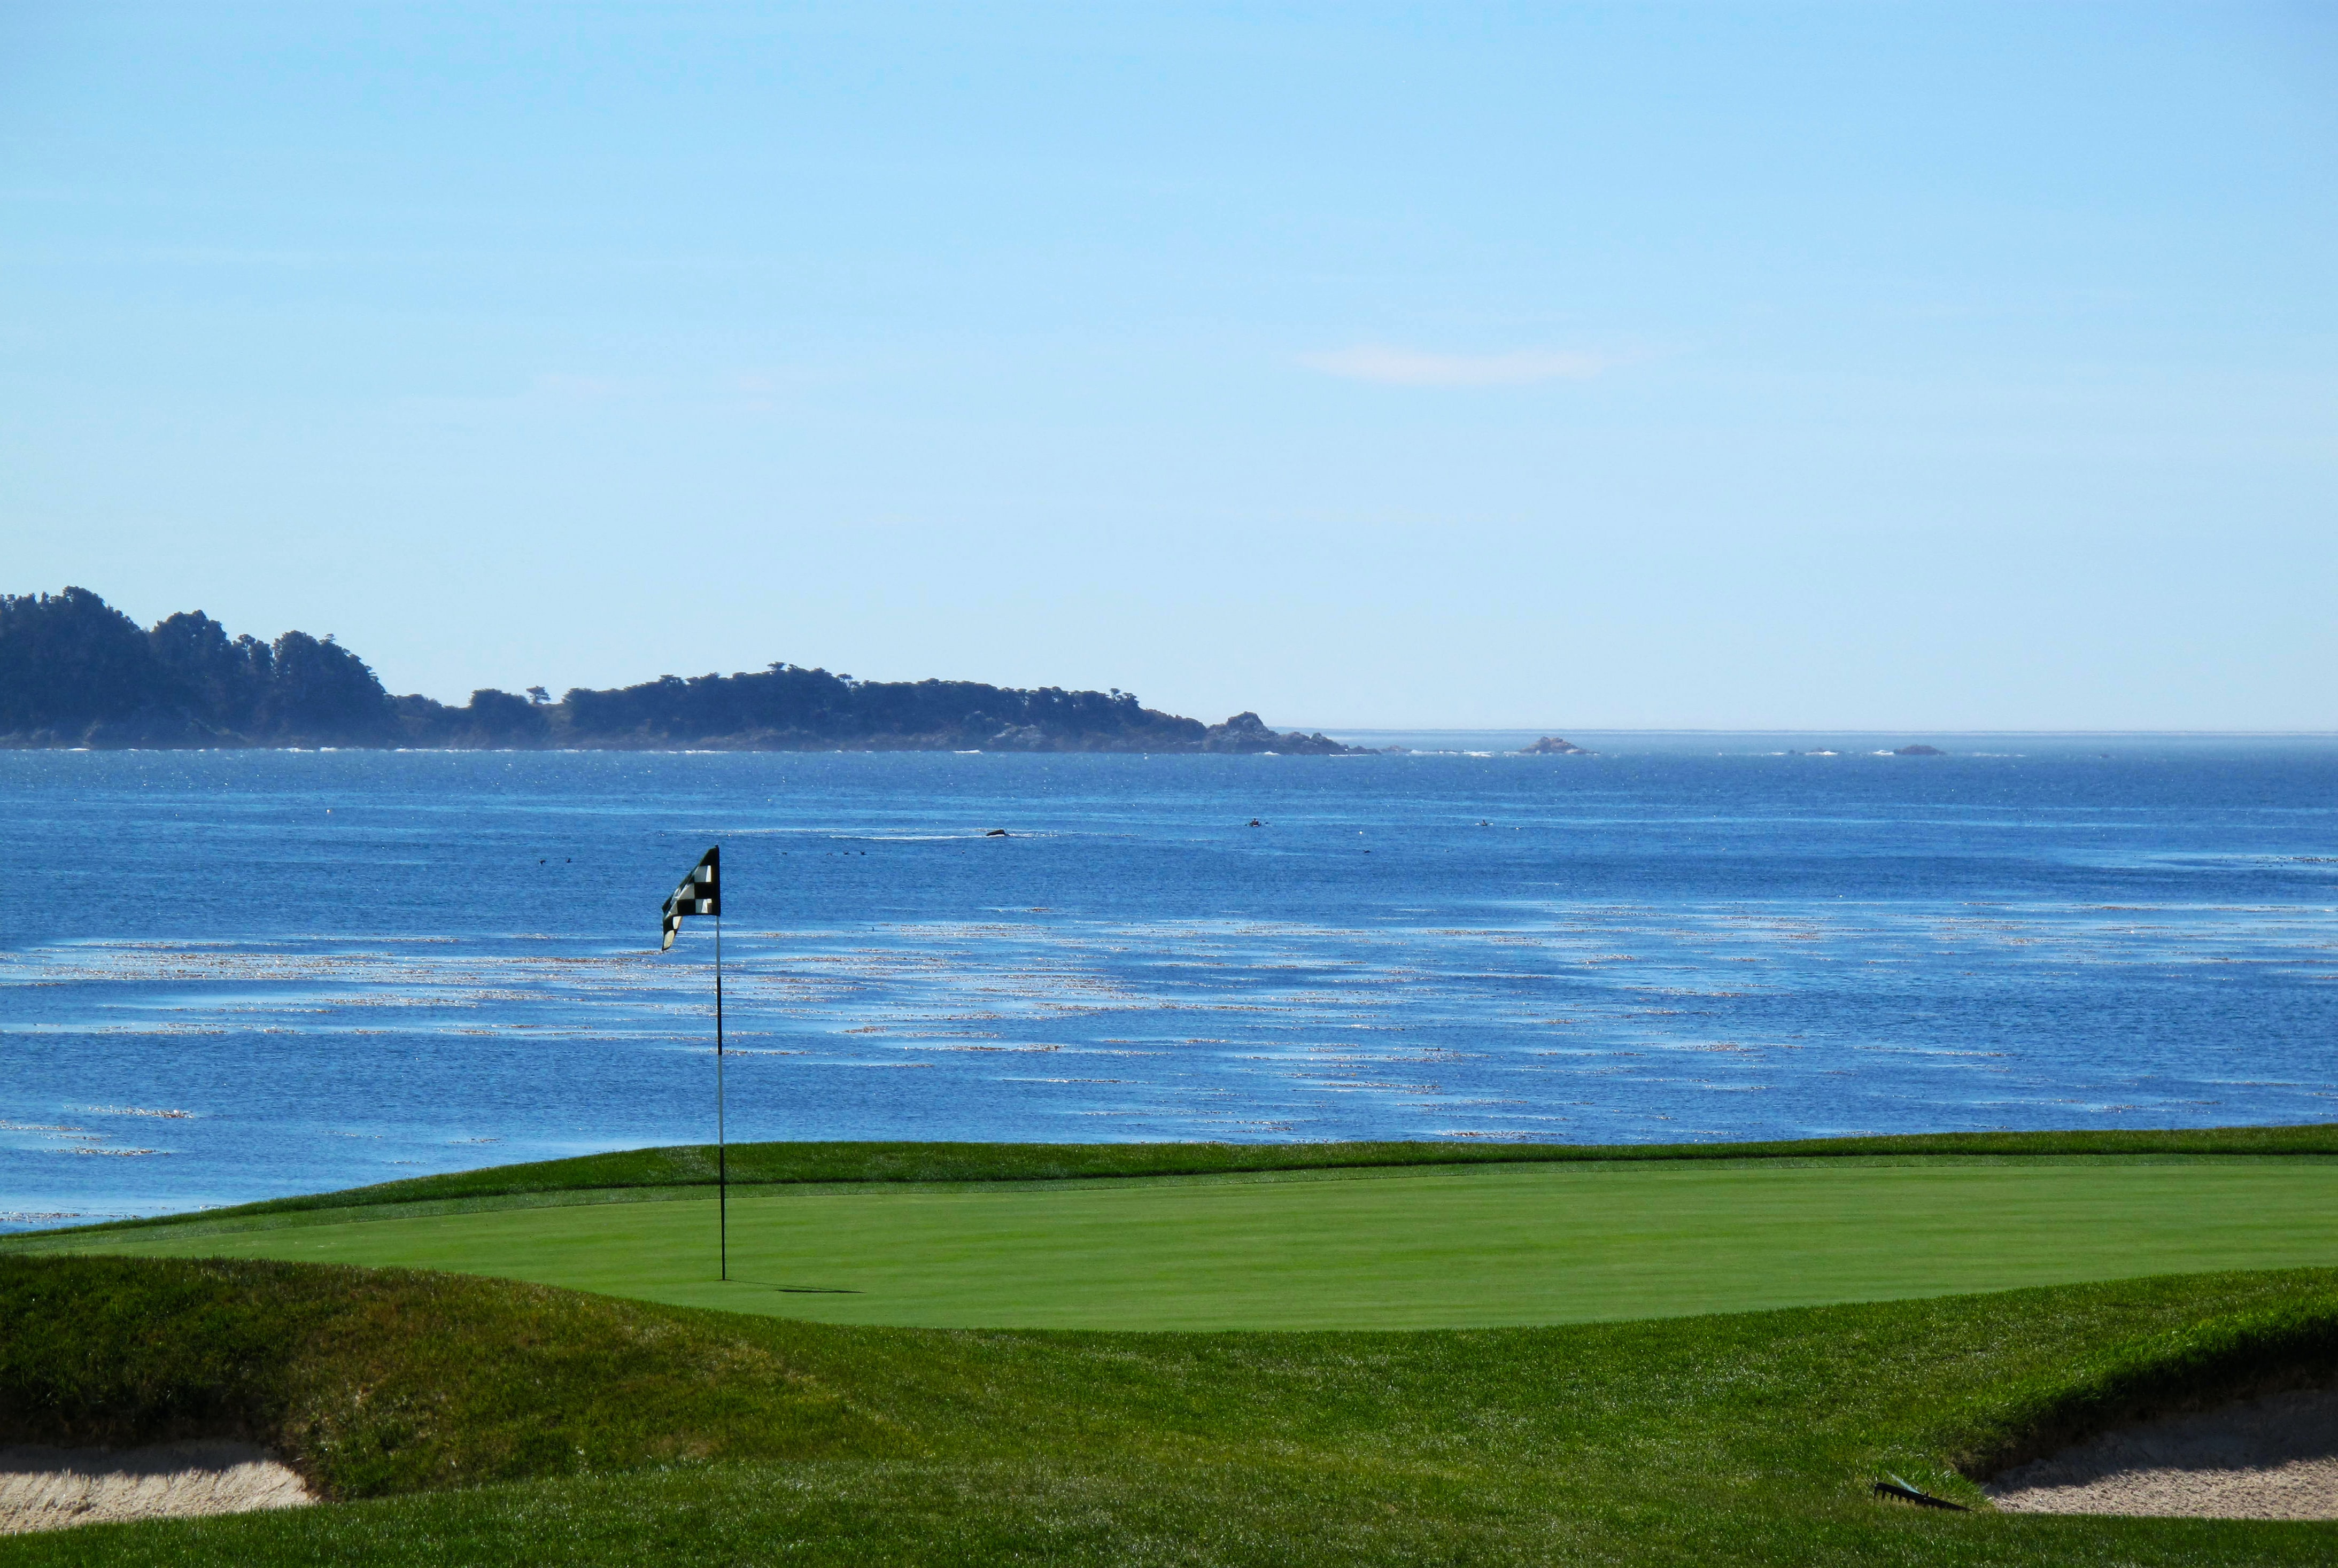 golf course near body of water